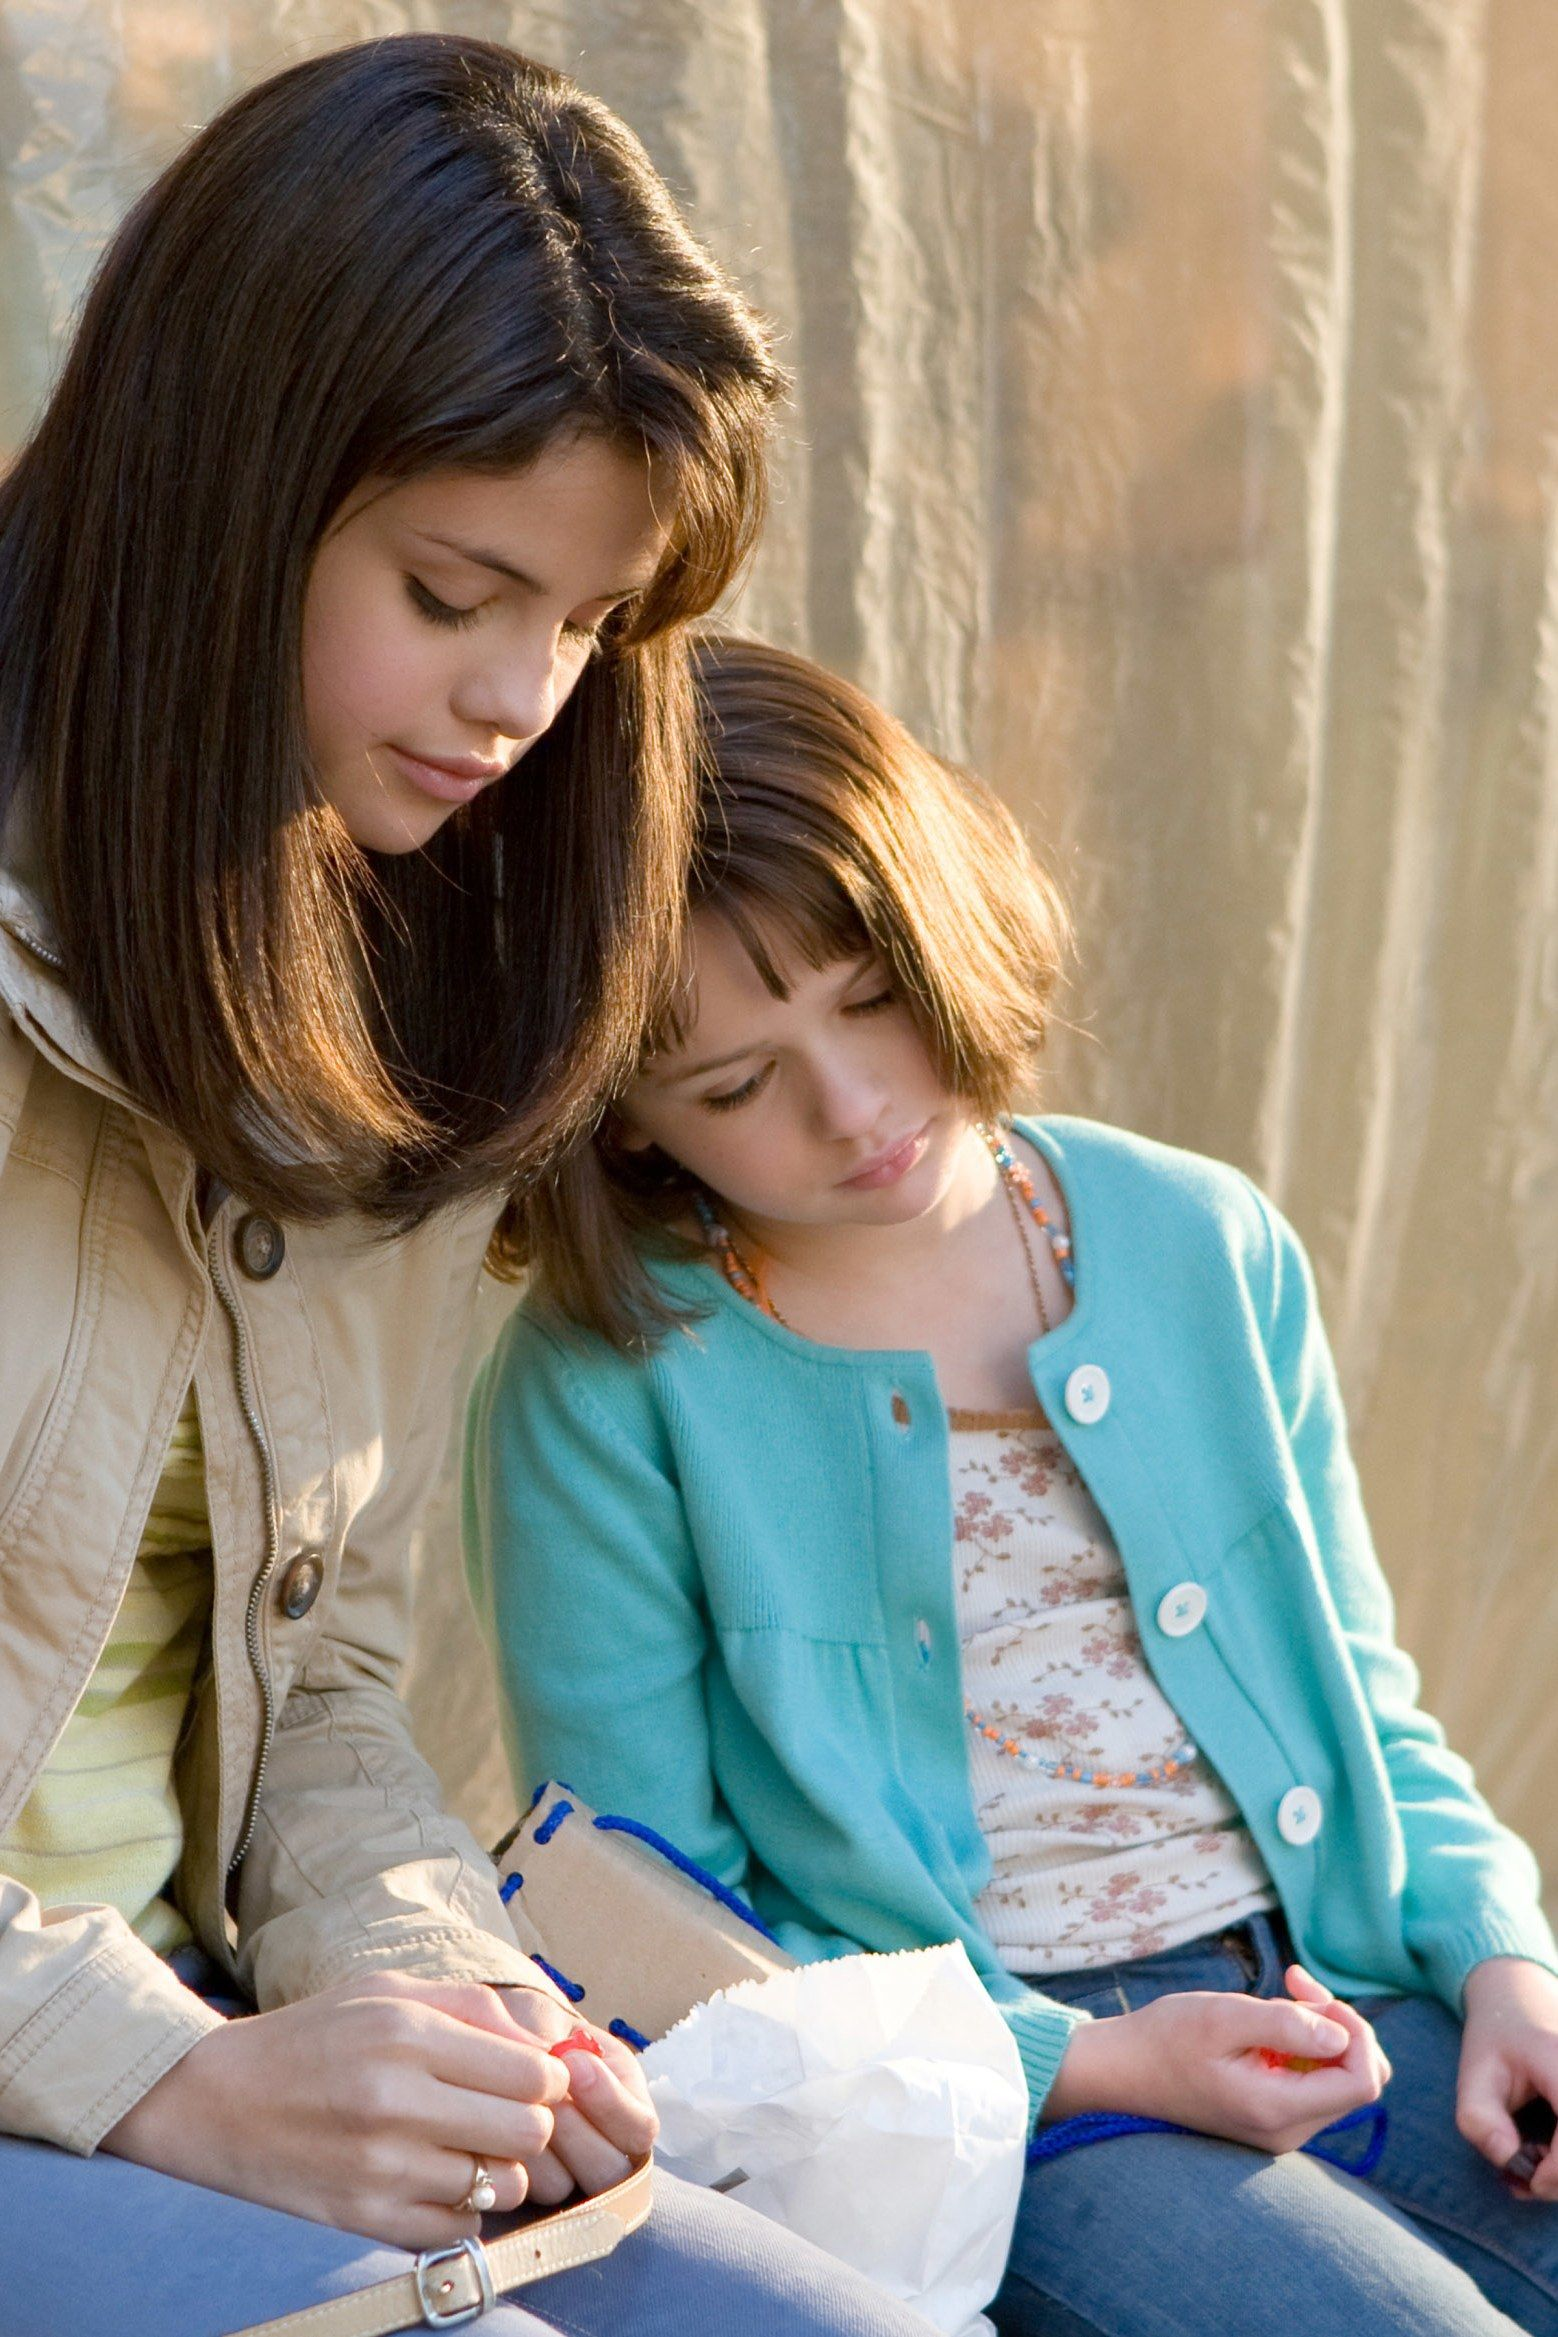 12 Selena Gomez Roles You Totally Forgot About Selena Gomez Movies Selena Gomez Images Ramona And Beezus